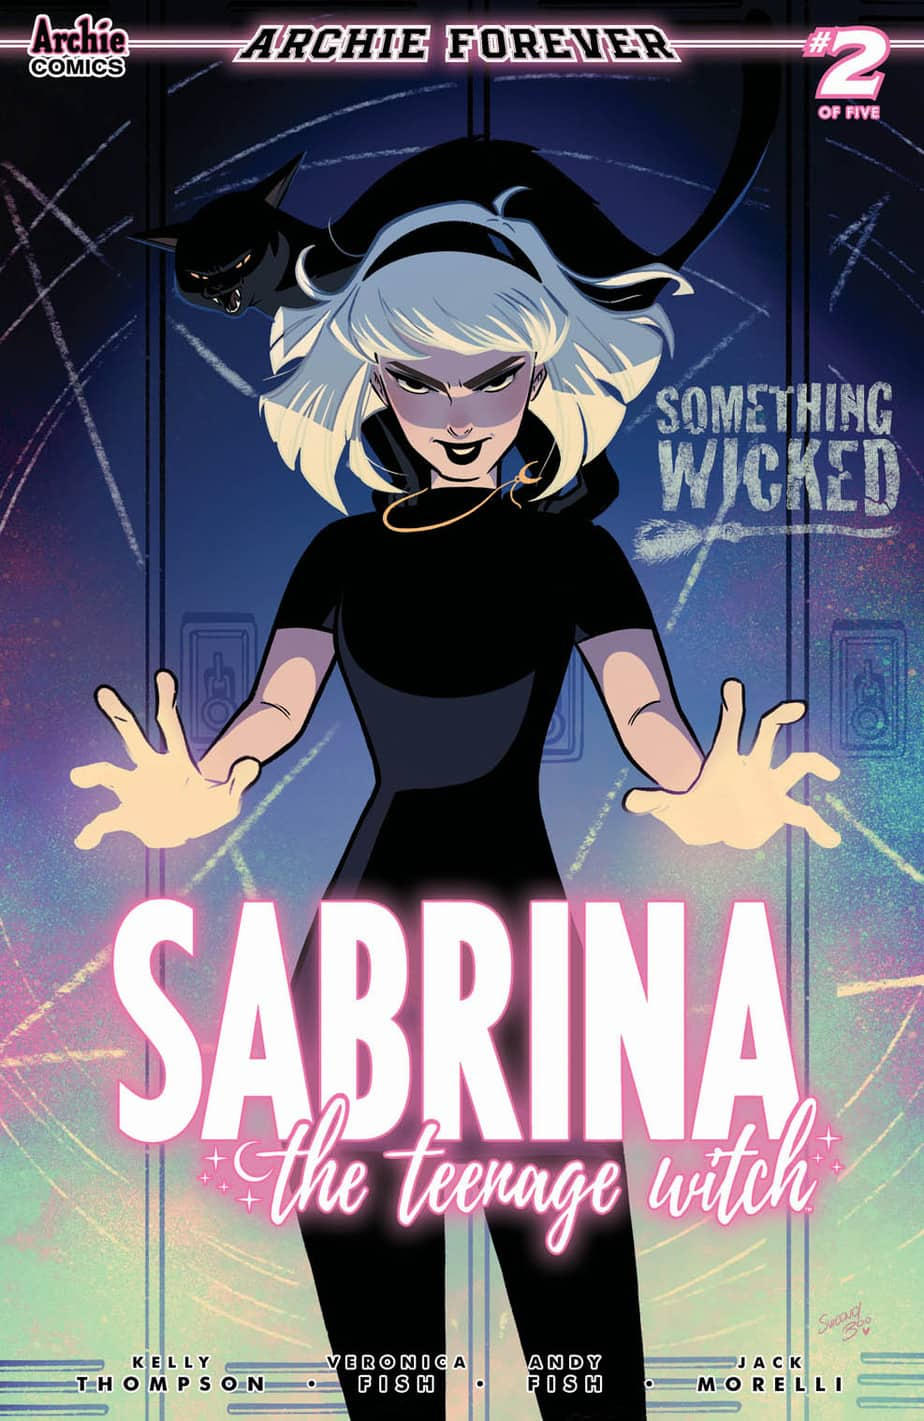 SABRINA: SOMETHING WICKED #2 - Cover A